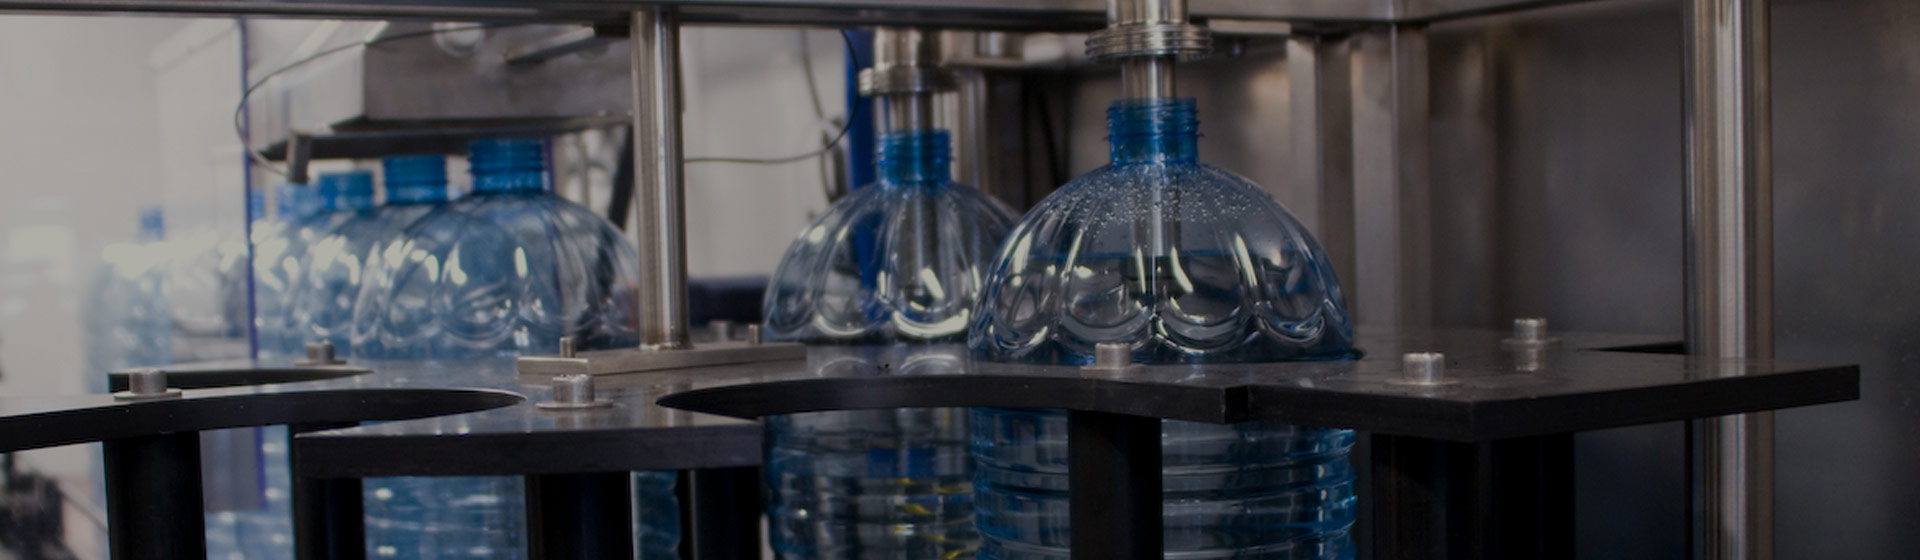 PET bottling lines